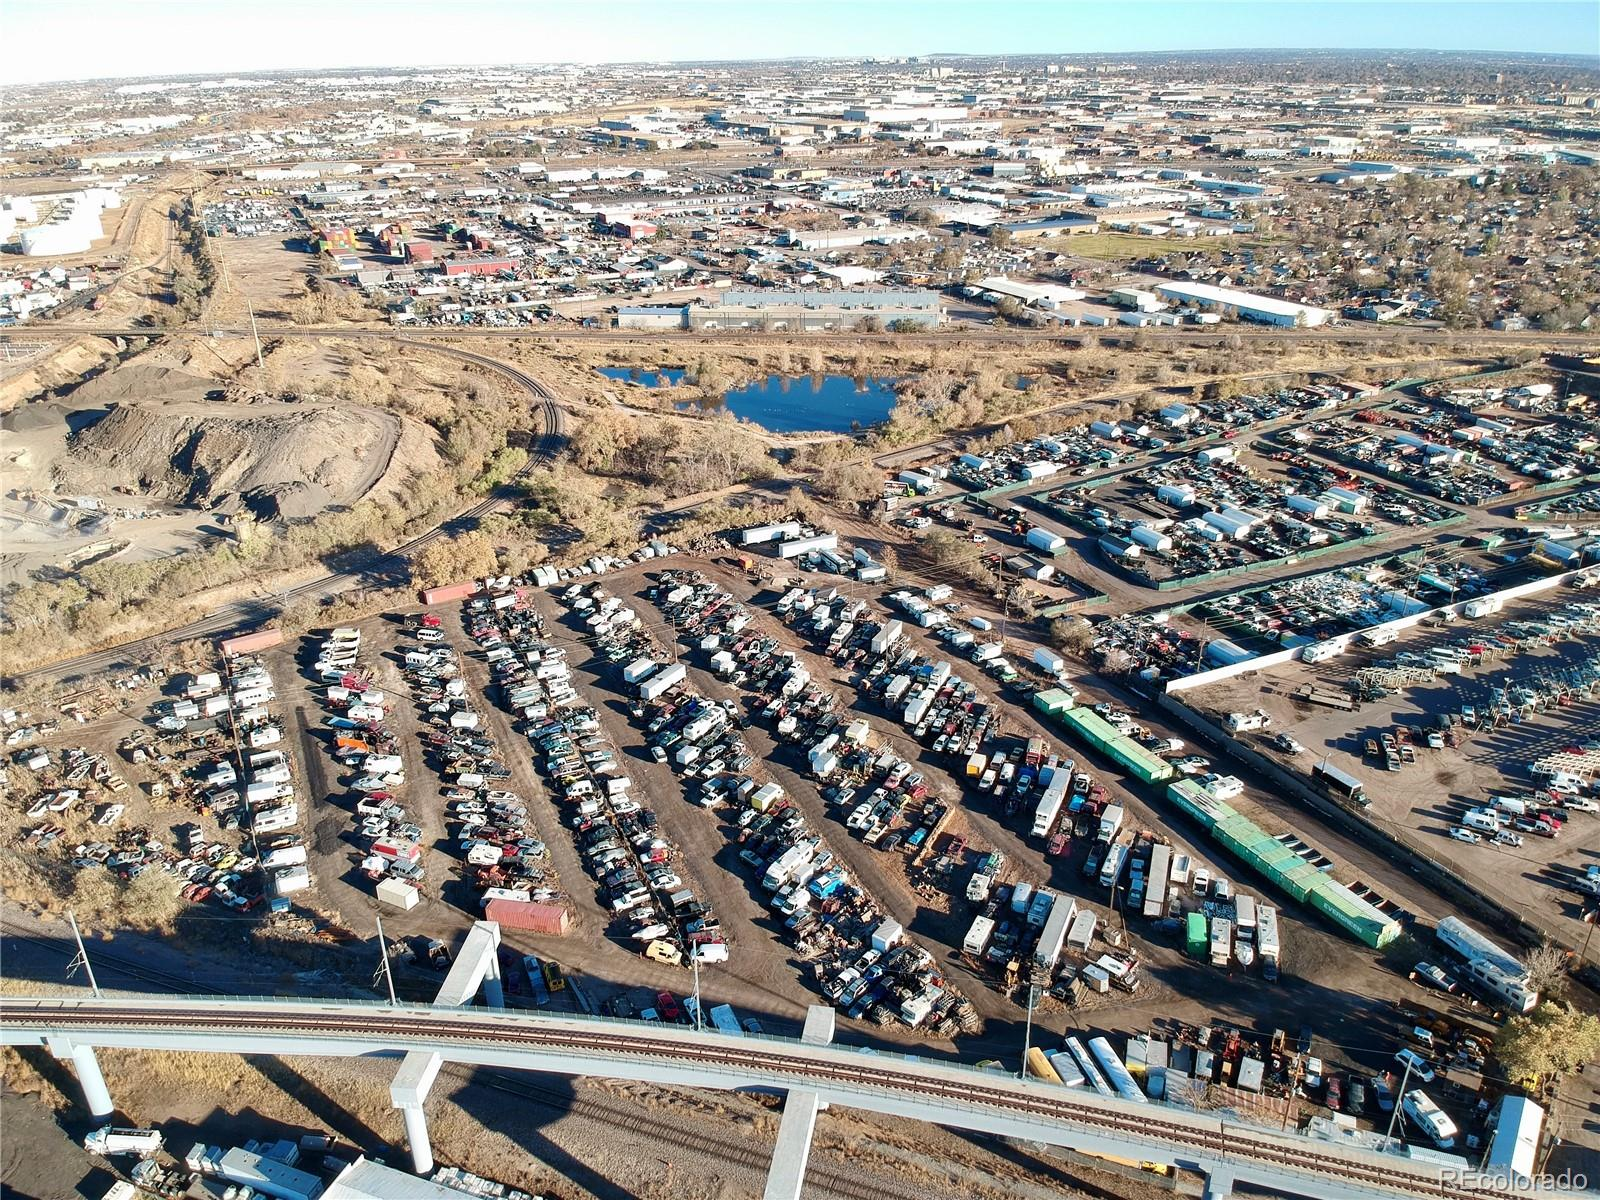 Great location .8 mile from National Western Center, 8 minutes from downtown Denver. Near I-70, I-76, I-25 and Hwy 36. Abuts light rail. Very secluded with BNSF Railway on one side and D&RCW Railway in back. Currently used for open storage. There is a 10' x 15' office & 15' x 20' additional building. Water & sewer on property (no natural gas). Price includes license for Salvage Yard (which is almost impossible to obtain in Denver. ZONING:  I-B OU-2, Commerce City I-3. Lots of possibilities for your business!